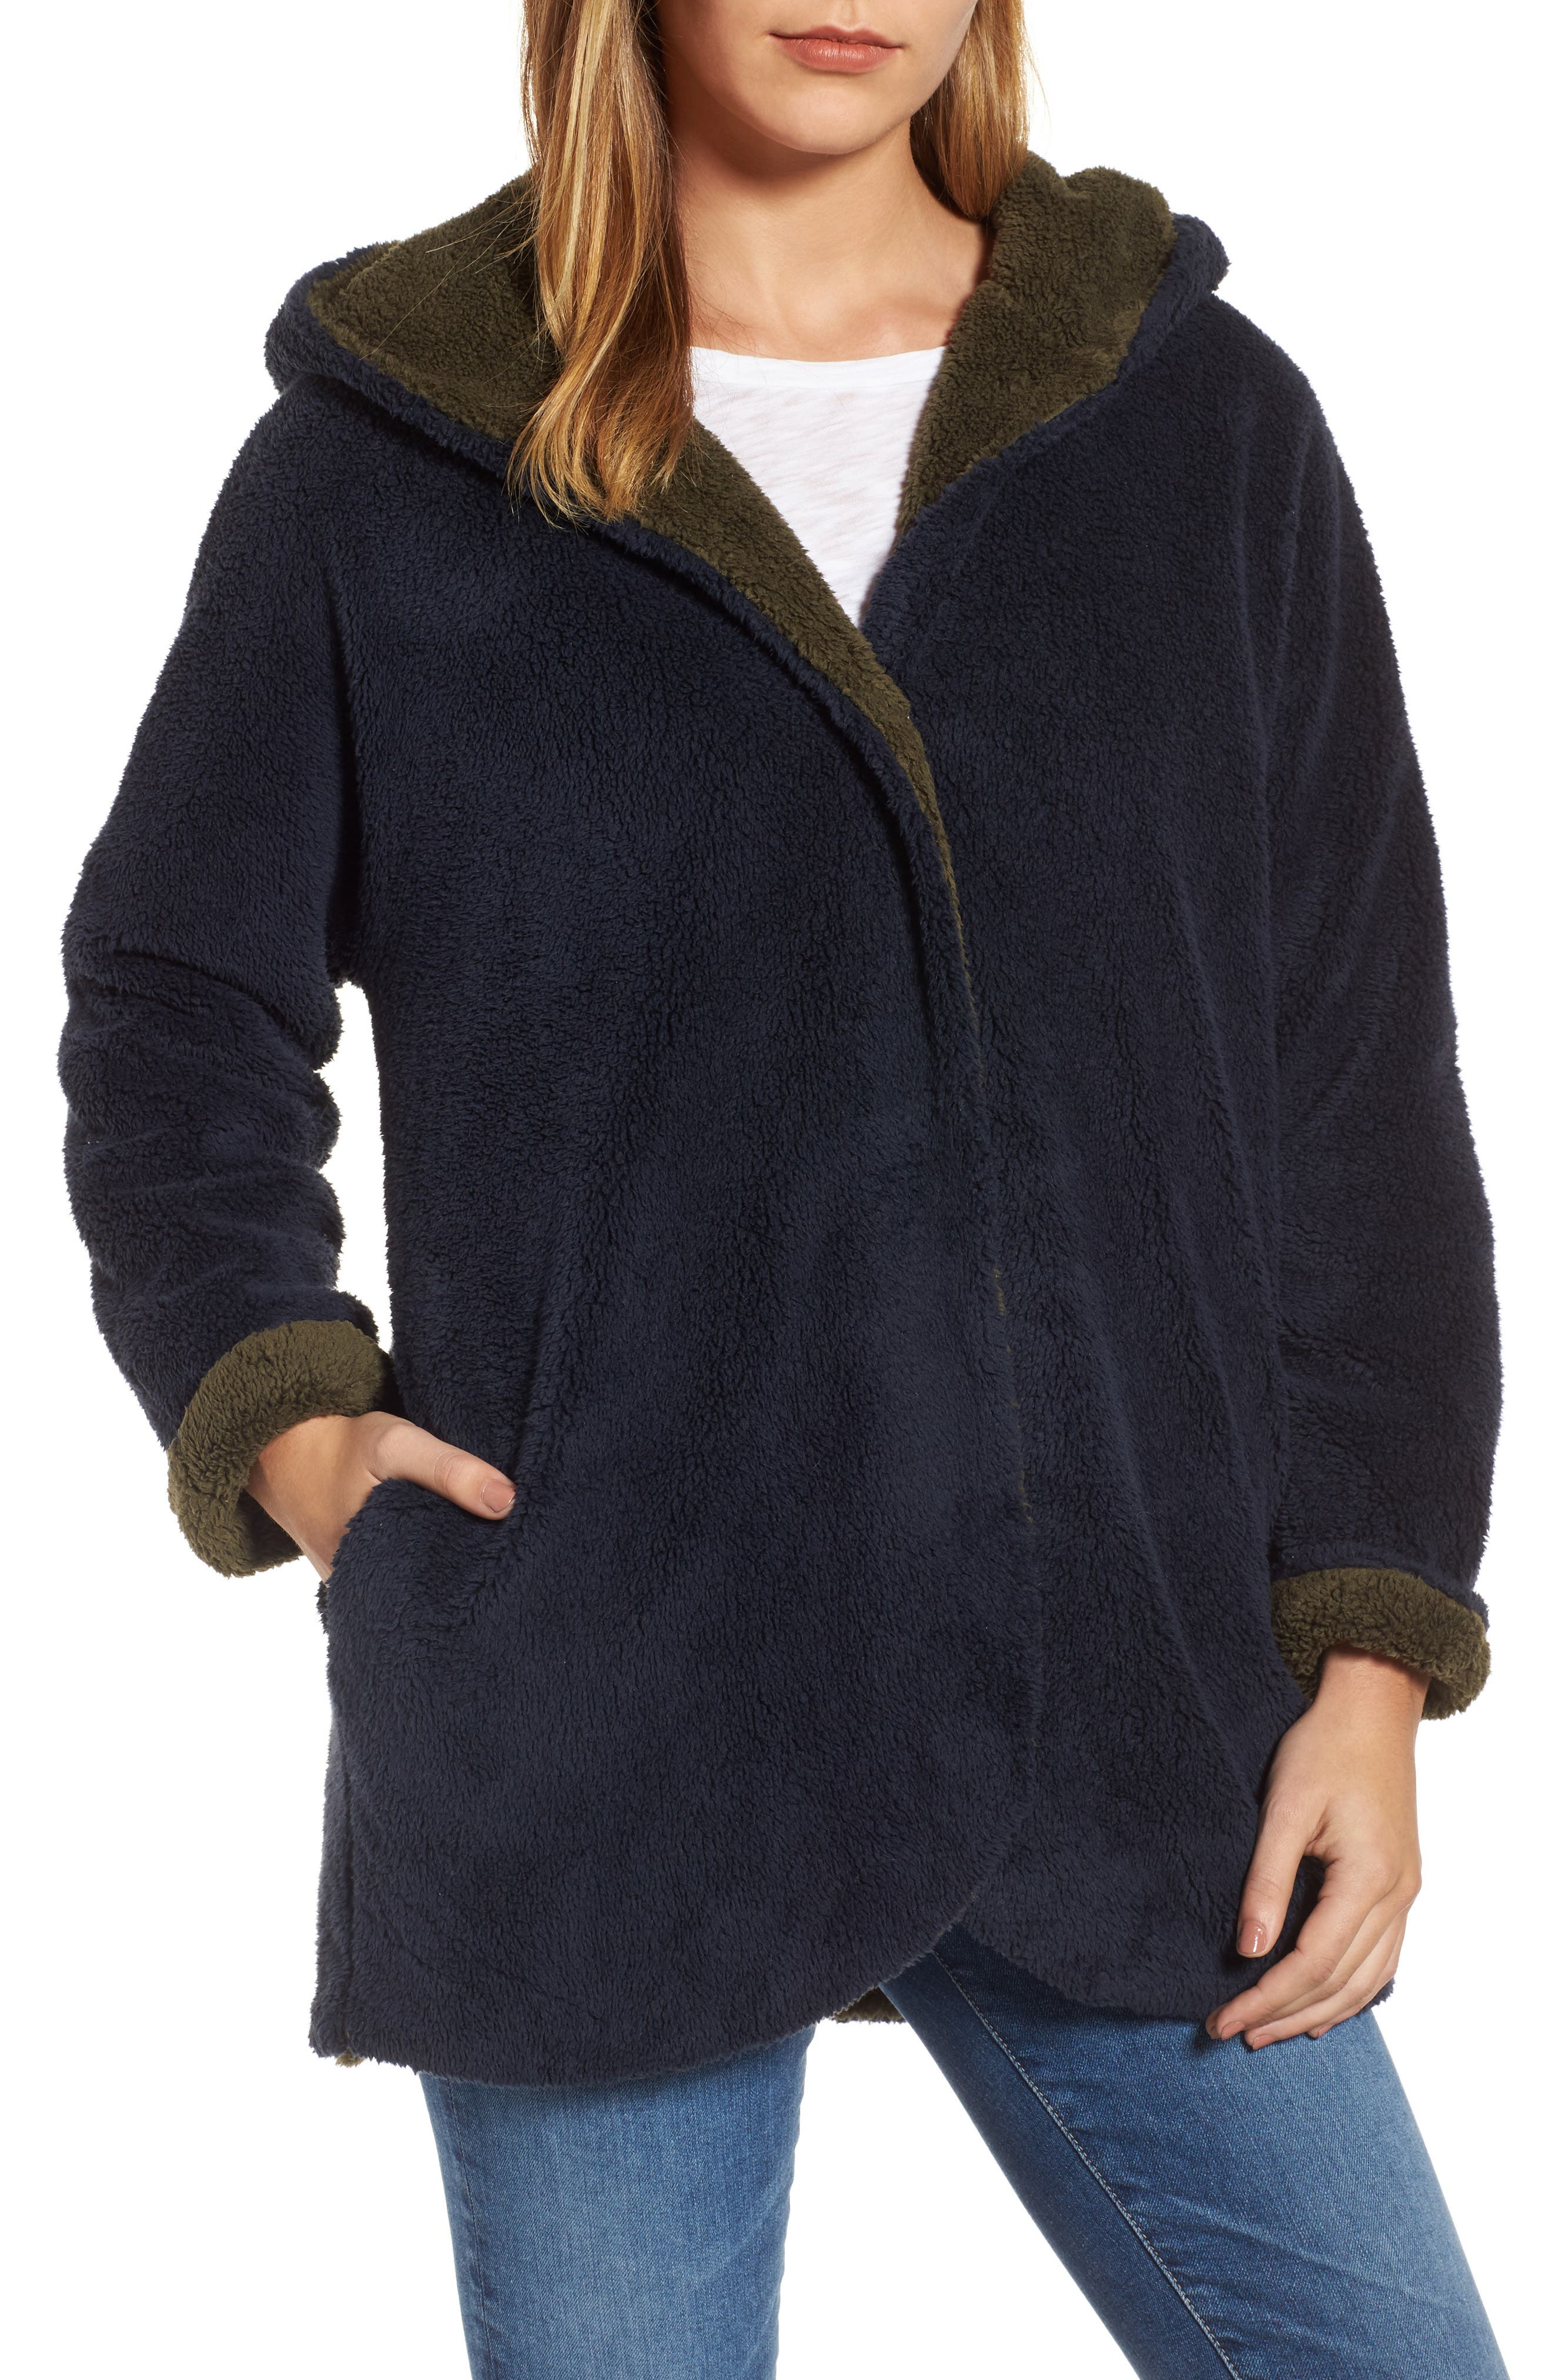 Hooded Reversible Coat,                             Main thumbnail 1, color,                             Navy/ Olive